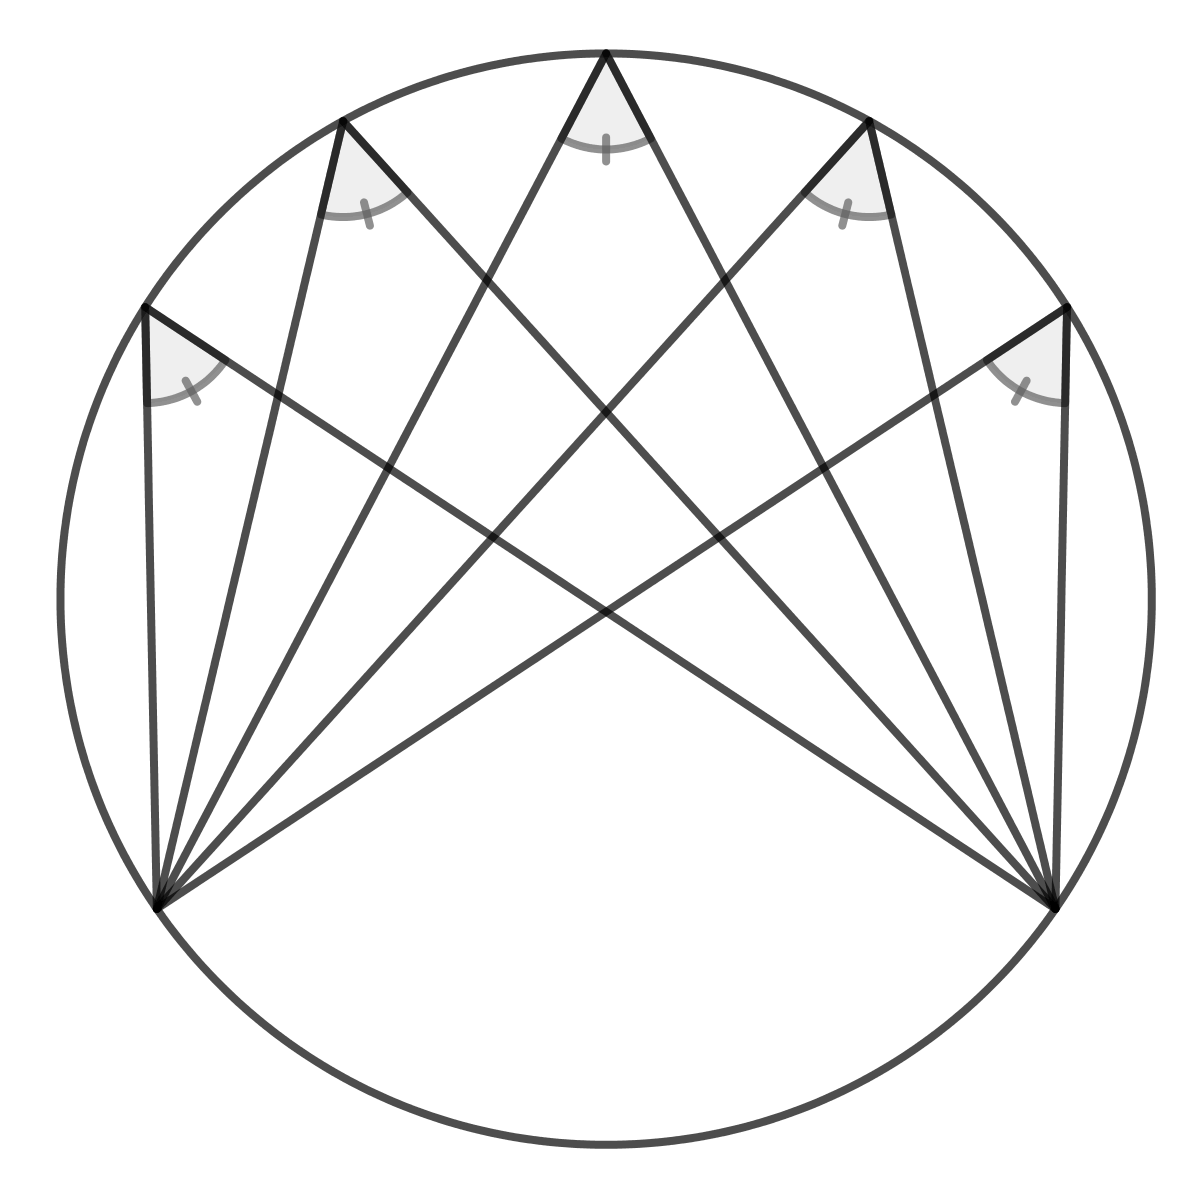 Geometry - Circles and Angles